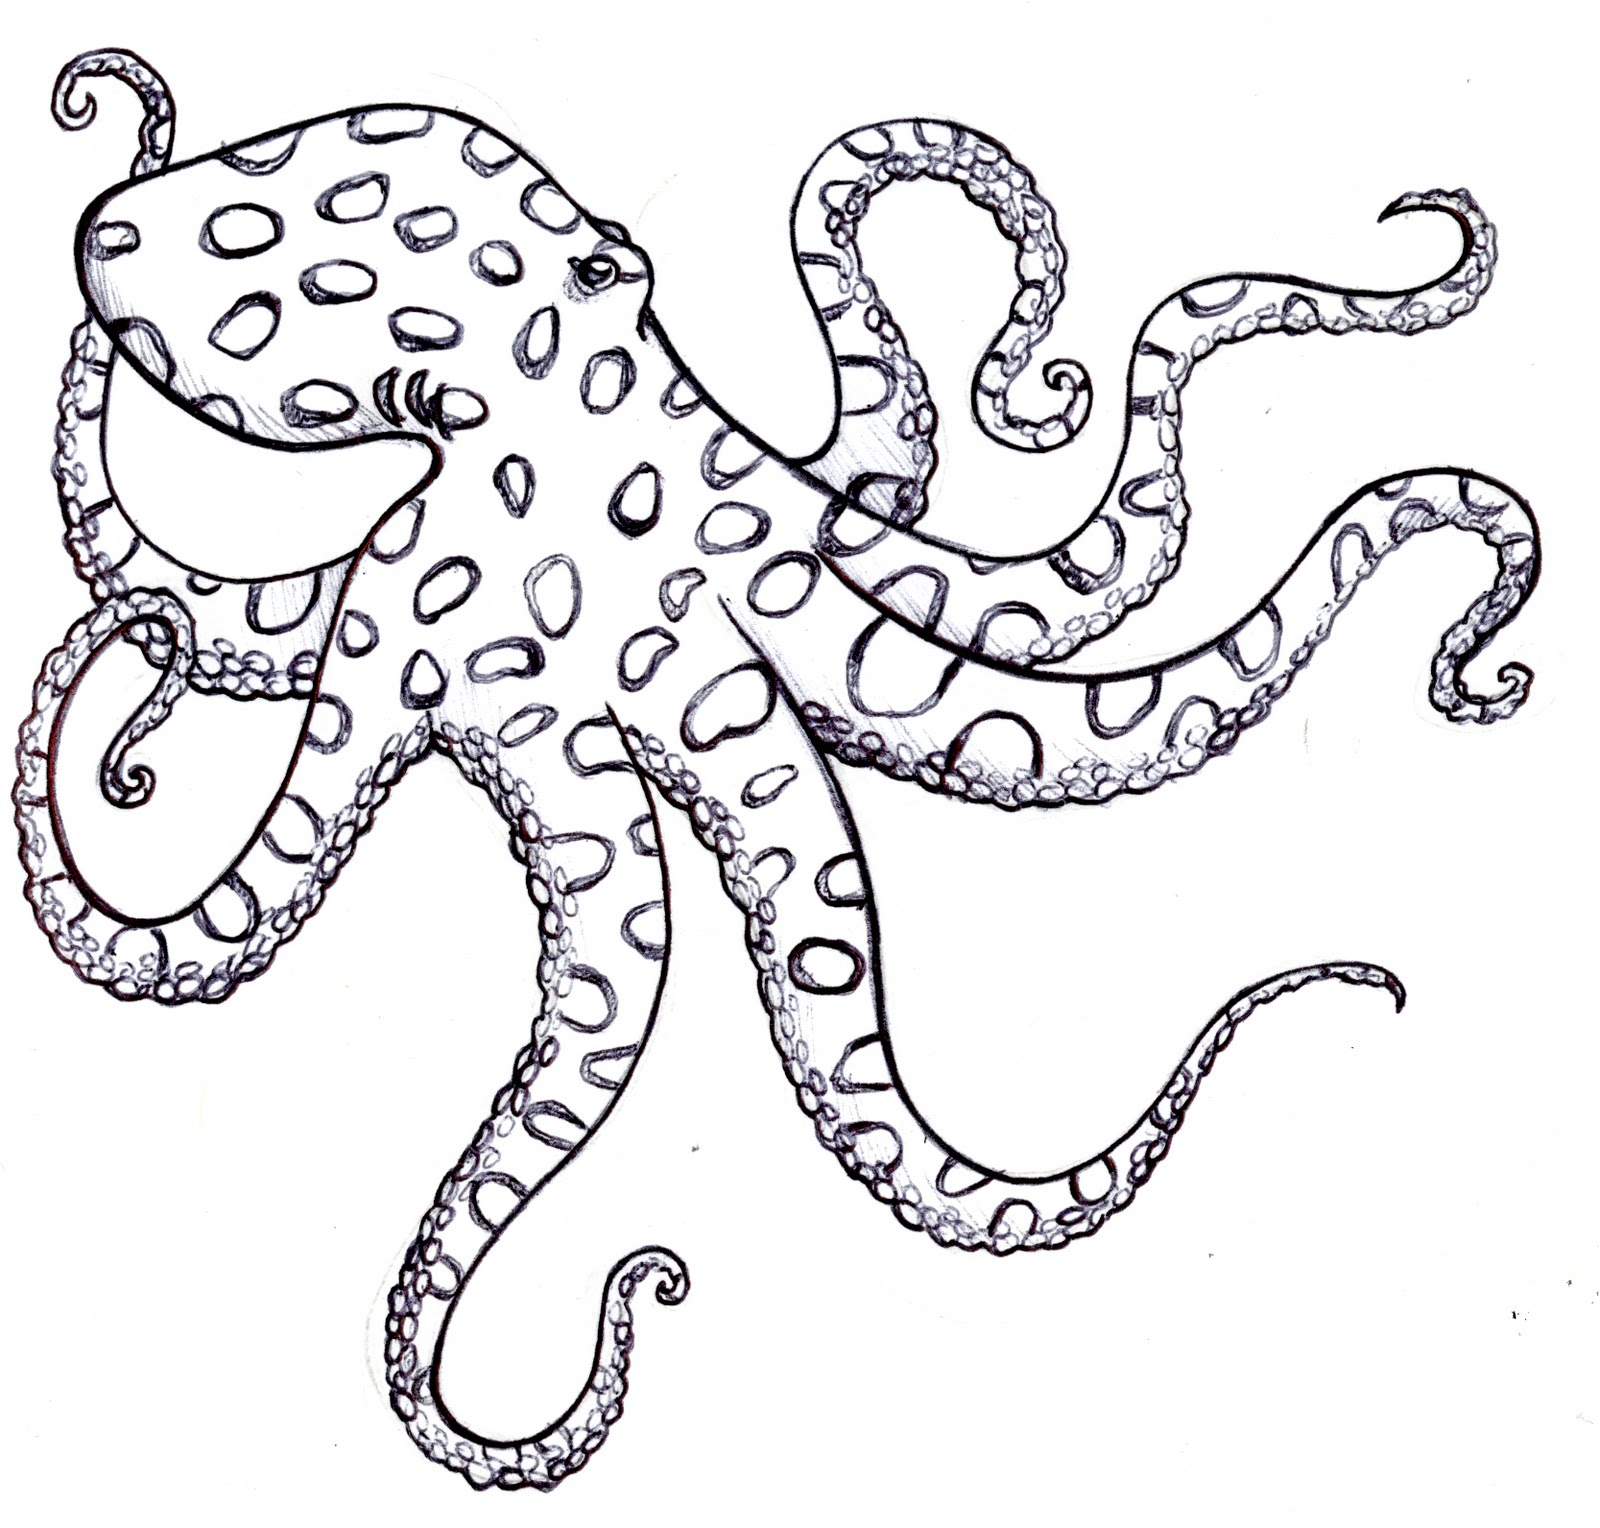 1600x1528 Black And White Octopus Drawing